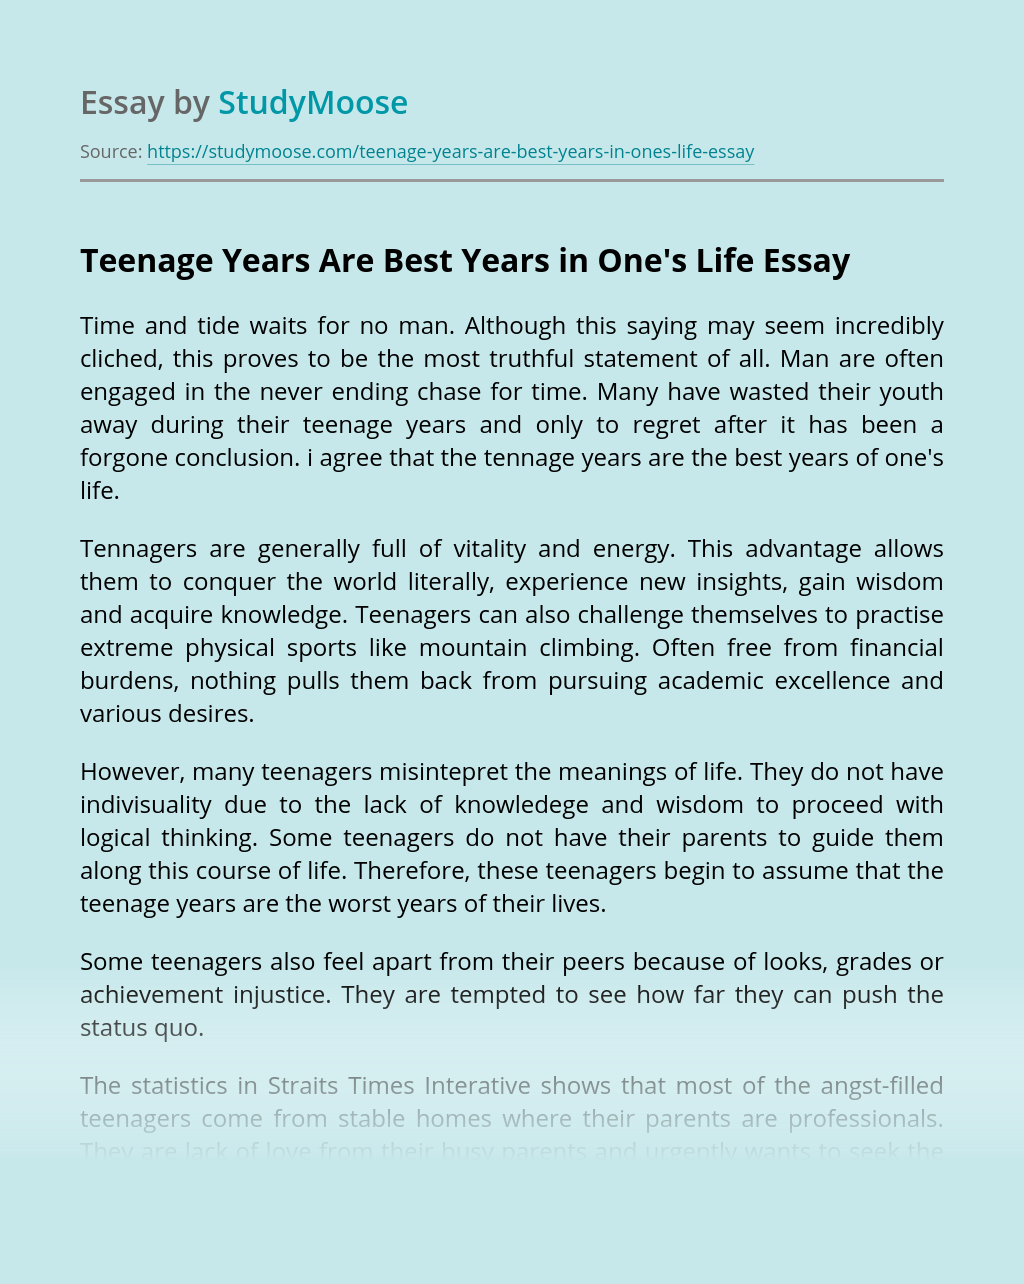 Teenage Years Are Best Years in One's Life